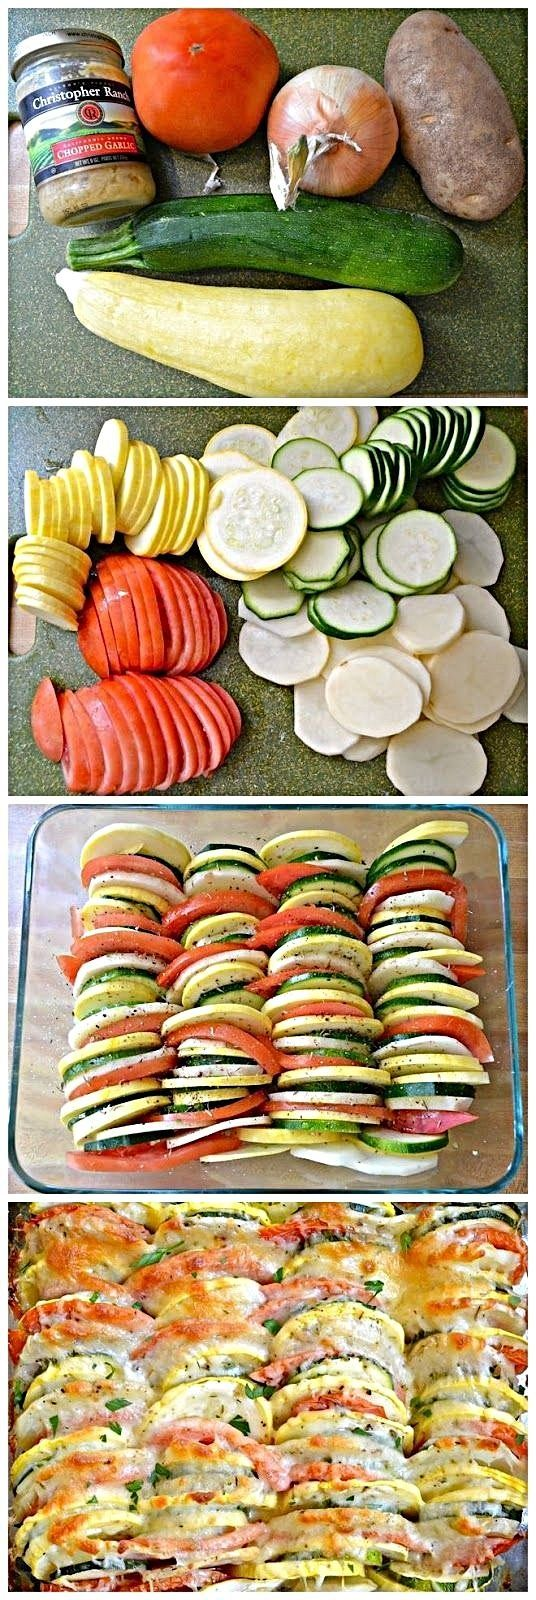 potatoes, onions, squash, zuchinni, tomatos...sliced, topped with seasoning and parmesian cheese by sandz